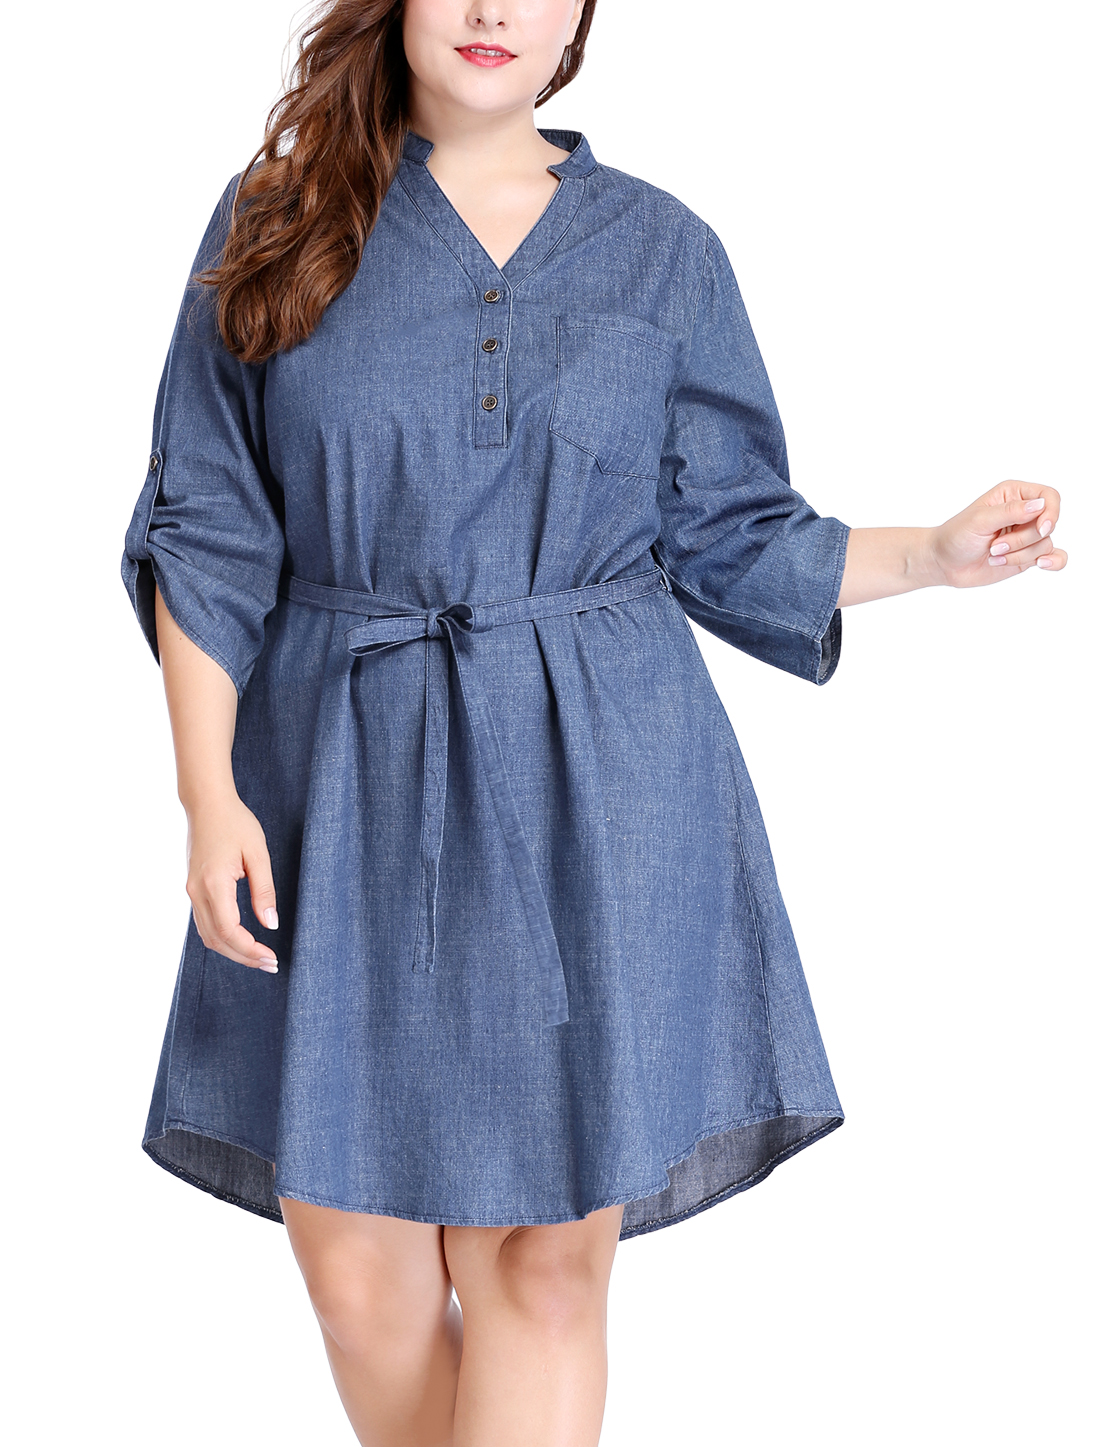 Women Plus Size Roll Up Sleeves Above Knee Belted Denim Dress Blue 2X